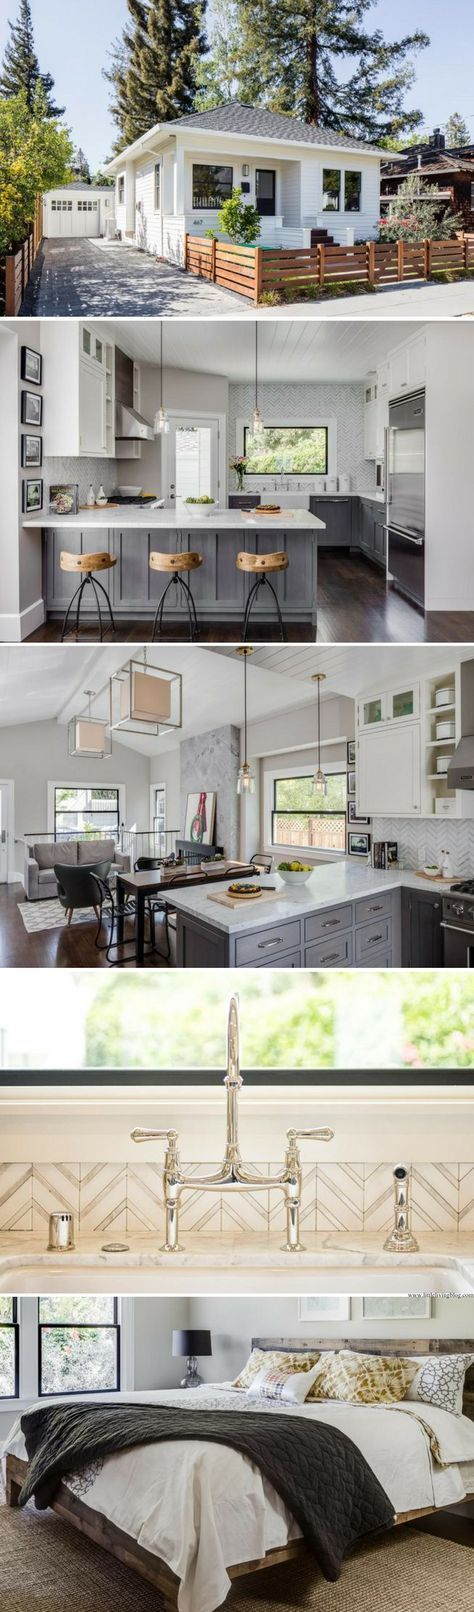 Best 25+ Small home design ideas on Pinterest | Small loft, Small ...